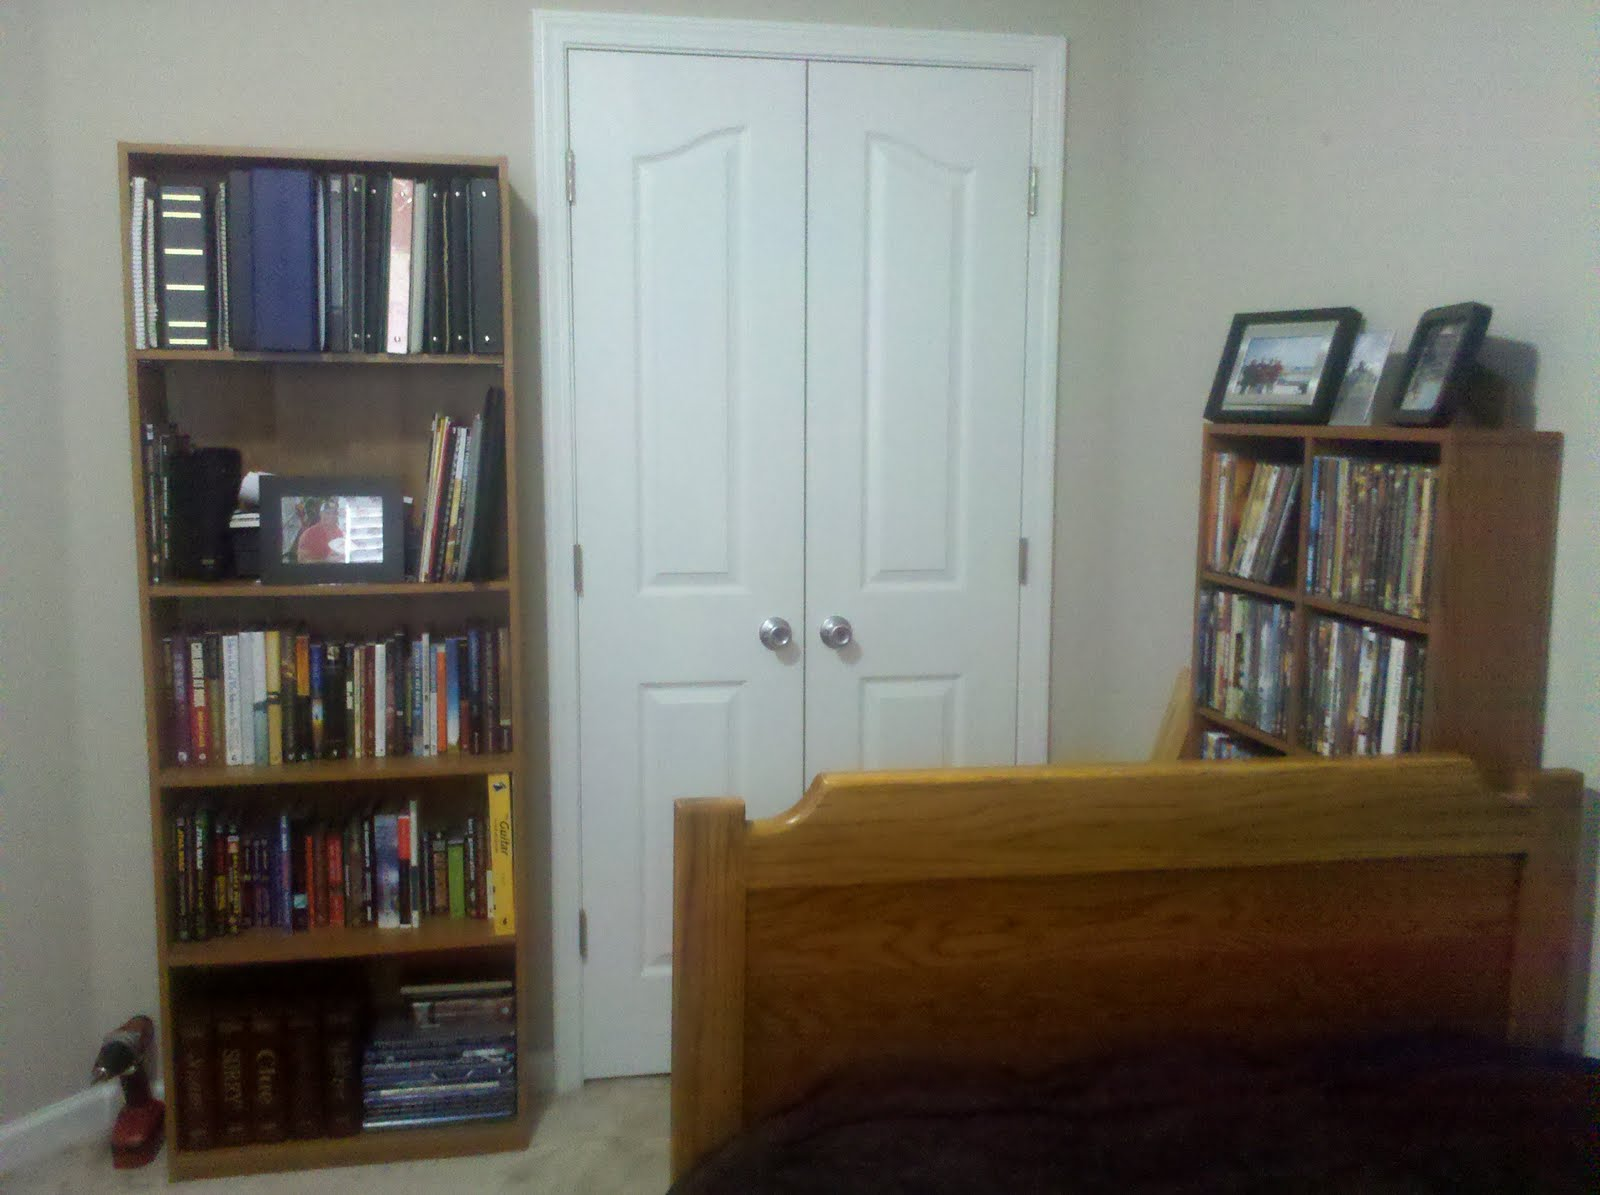 Man Cave In Storage Unit : Storage quot unit turned man cave taylor made home the